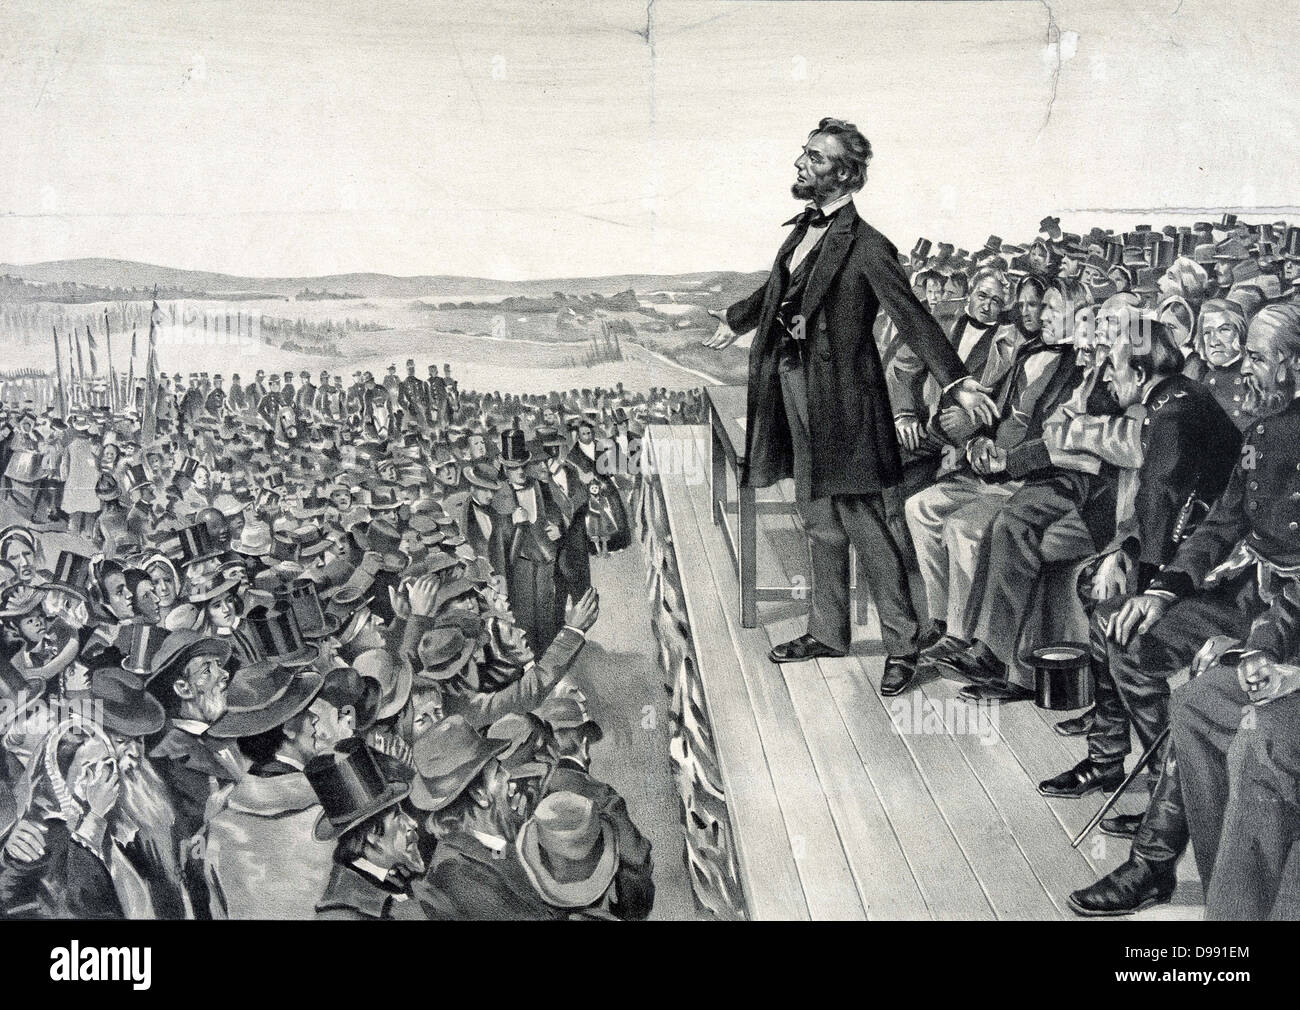 Abraham Lincoln making his famous address on 19 November 1863 at the dedication of the Soldiers' National Cemetery - Stock Image